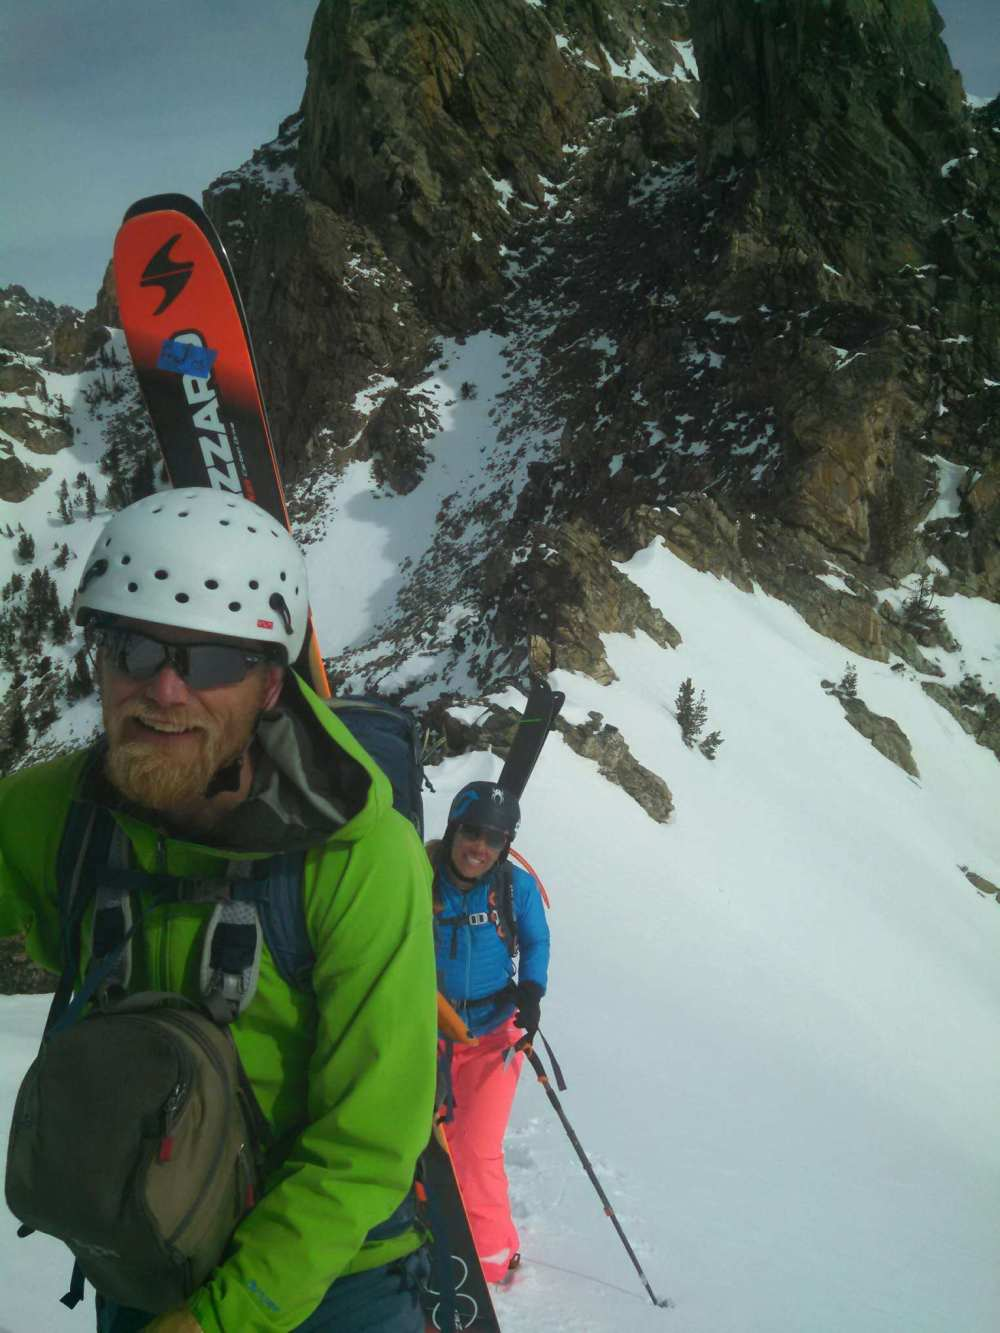 Spirits were high at the top of the Tube.  After boot packing up the couloir we knew we would have powder top to bottom!